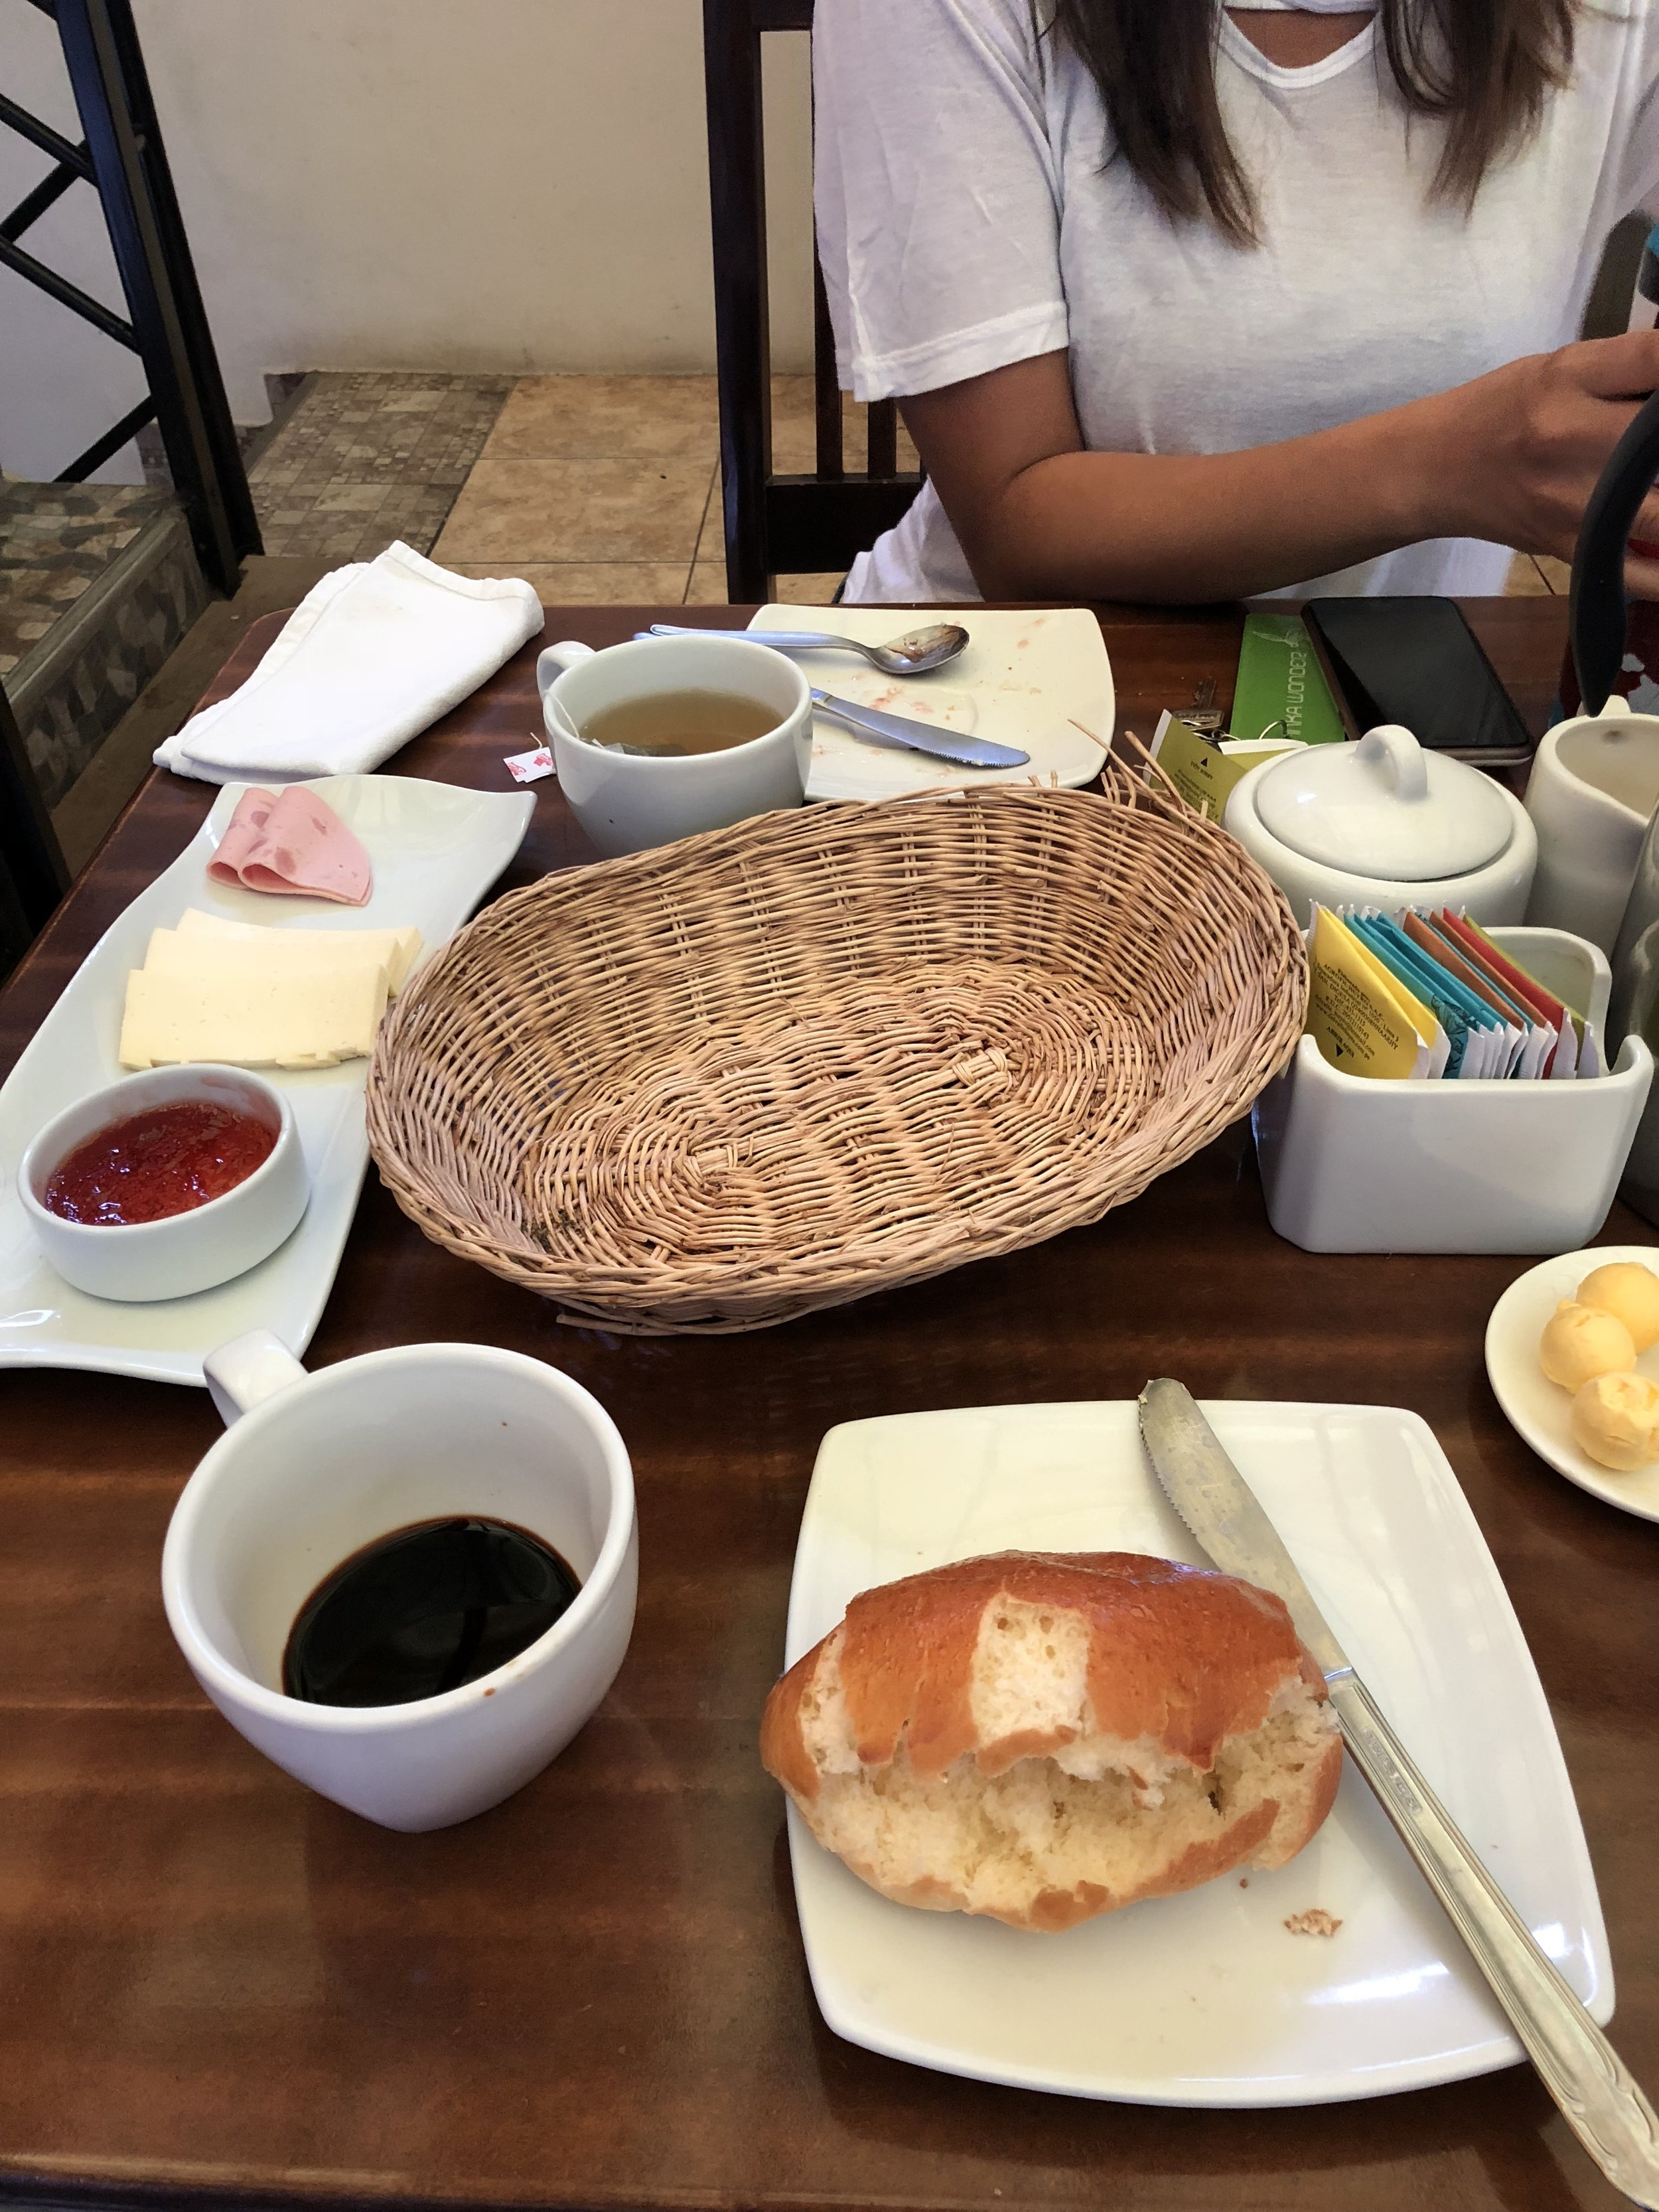 Oh our breakfast actually includes jam AND mystery meat?! WHAT A TREAT!!! (Aguascalientes, Peru)